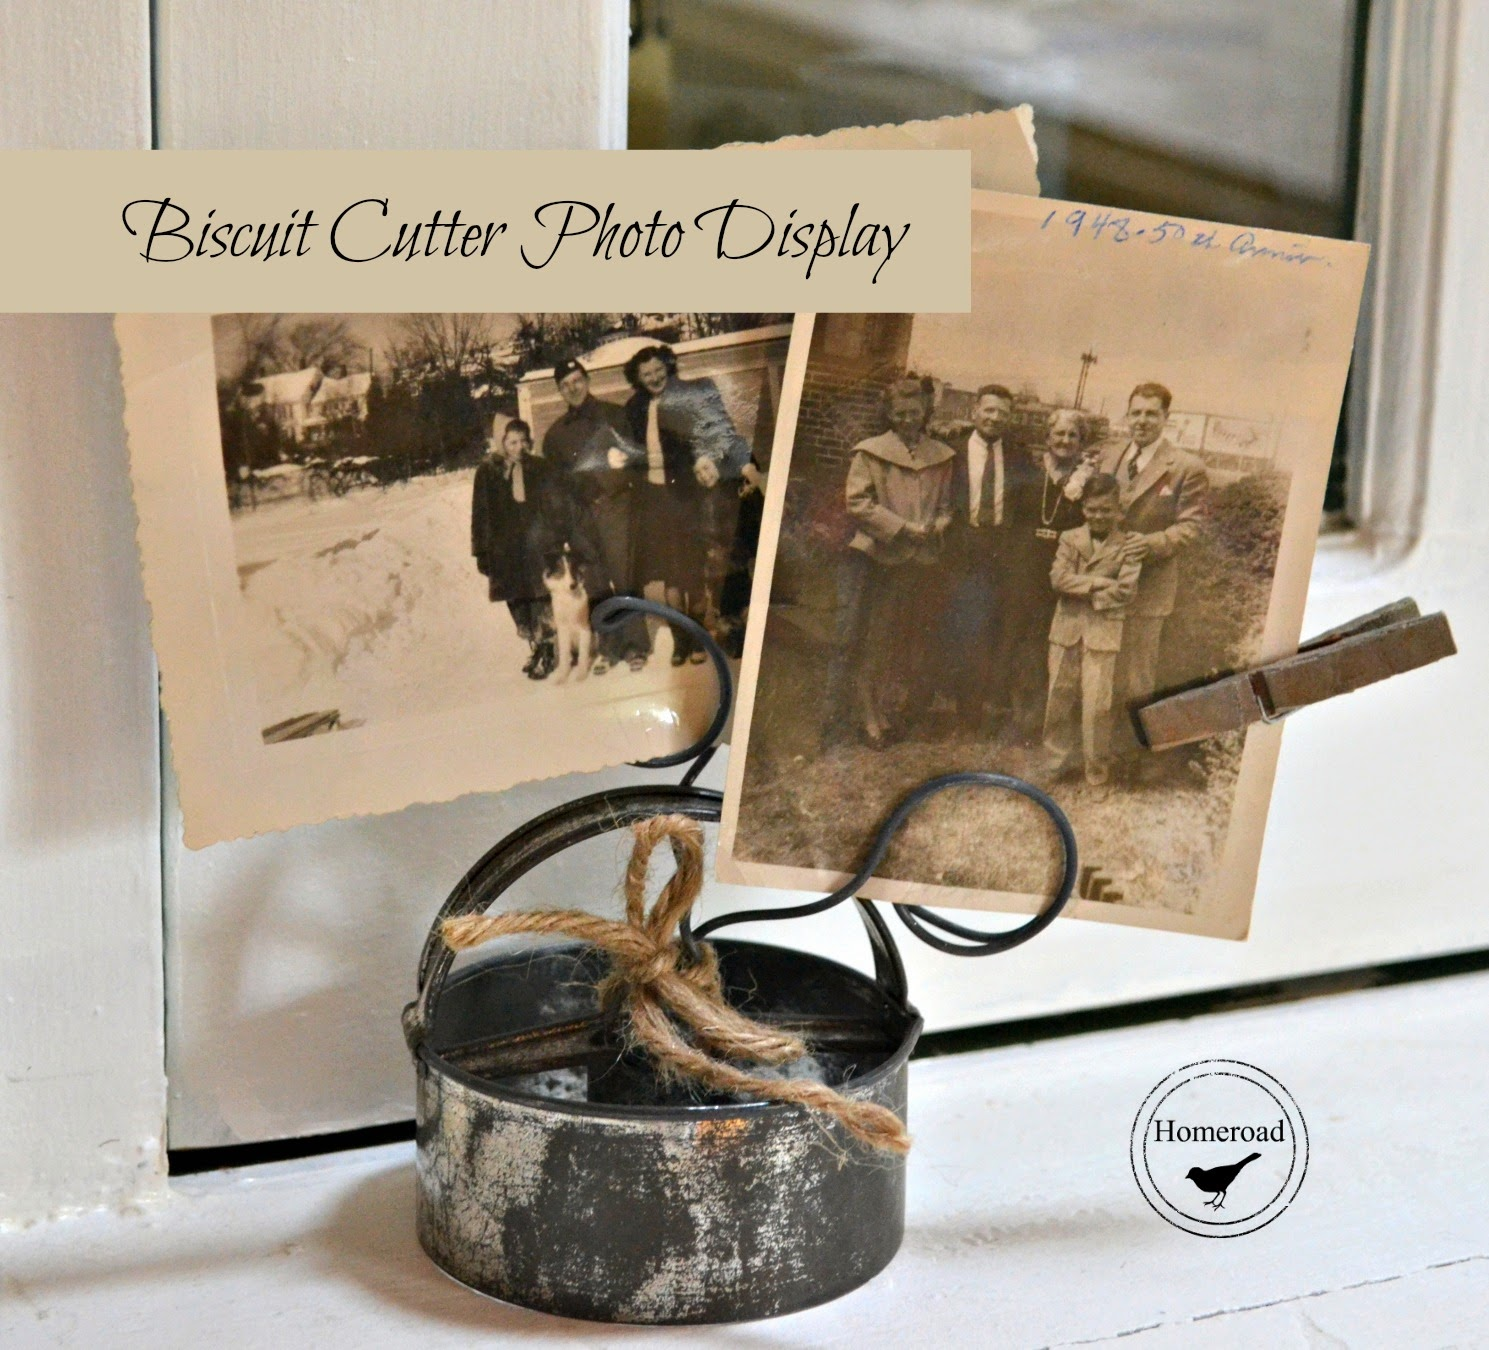 biscuit-cutter-photo-display www.homeroad.net